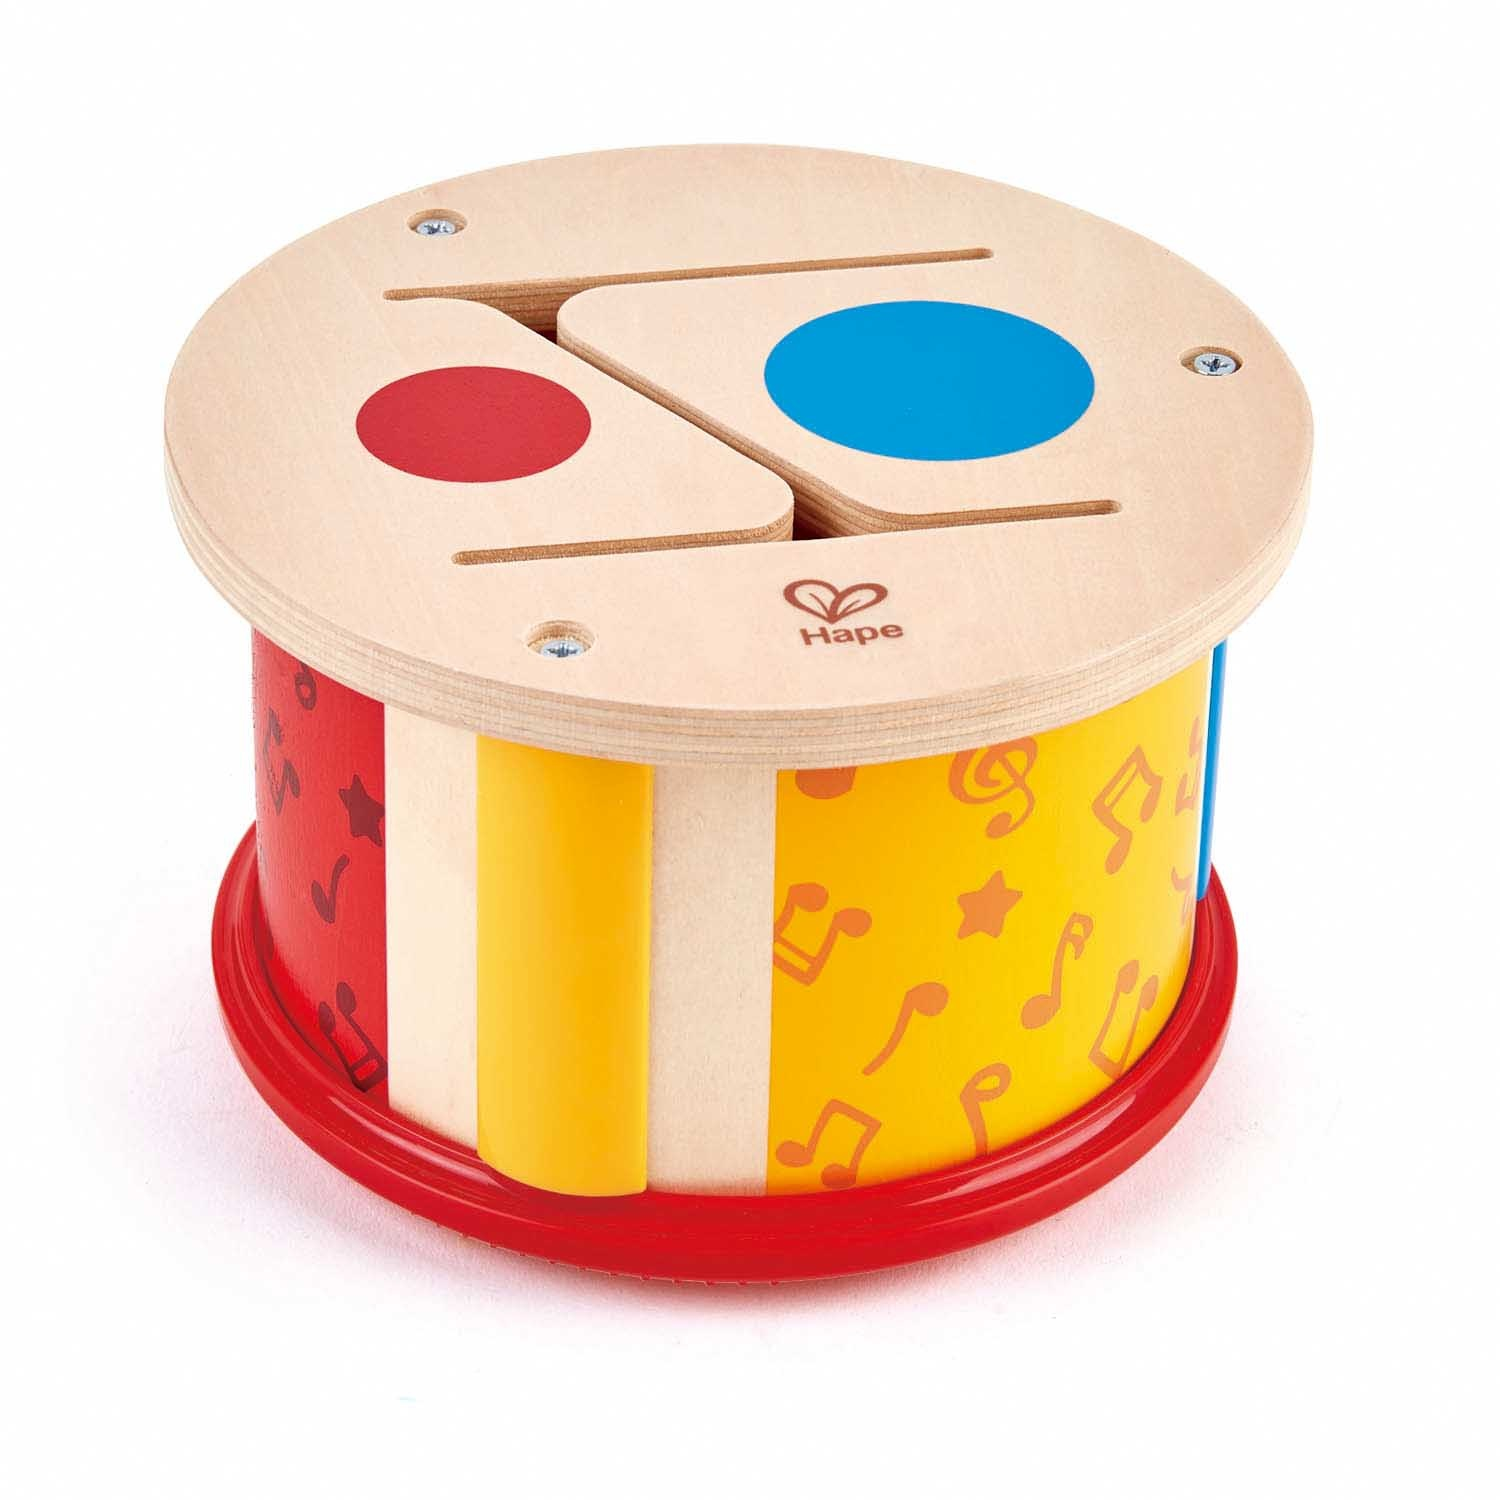 Hape Hape Double Sided Drum